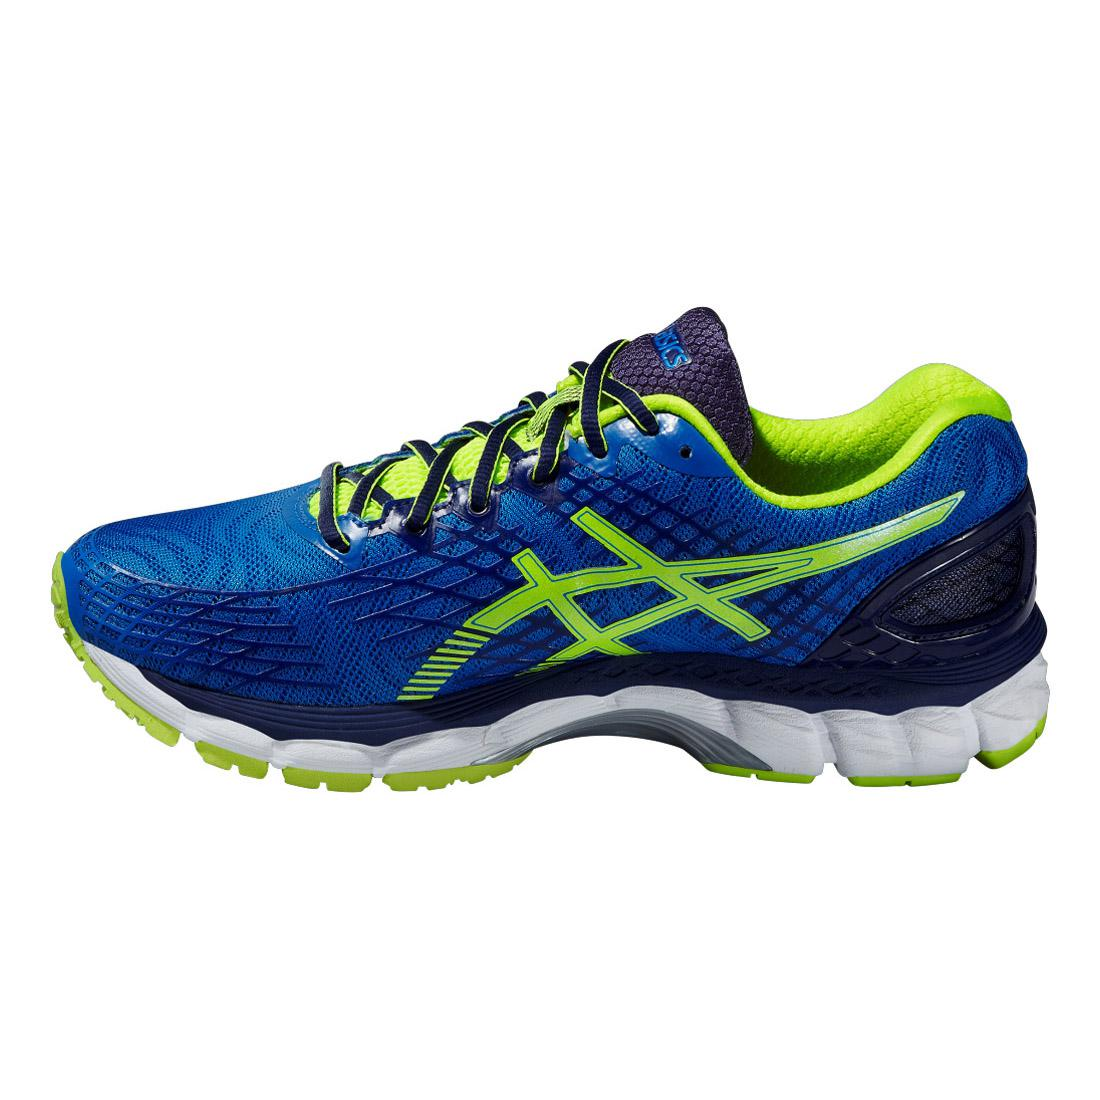 asics mens gel nimbus 17 running shoes electric blue flash yellow. Black Bedroom Furniture Sets. Home Design Ideas